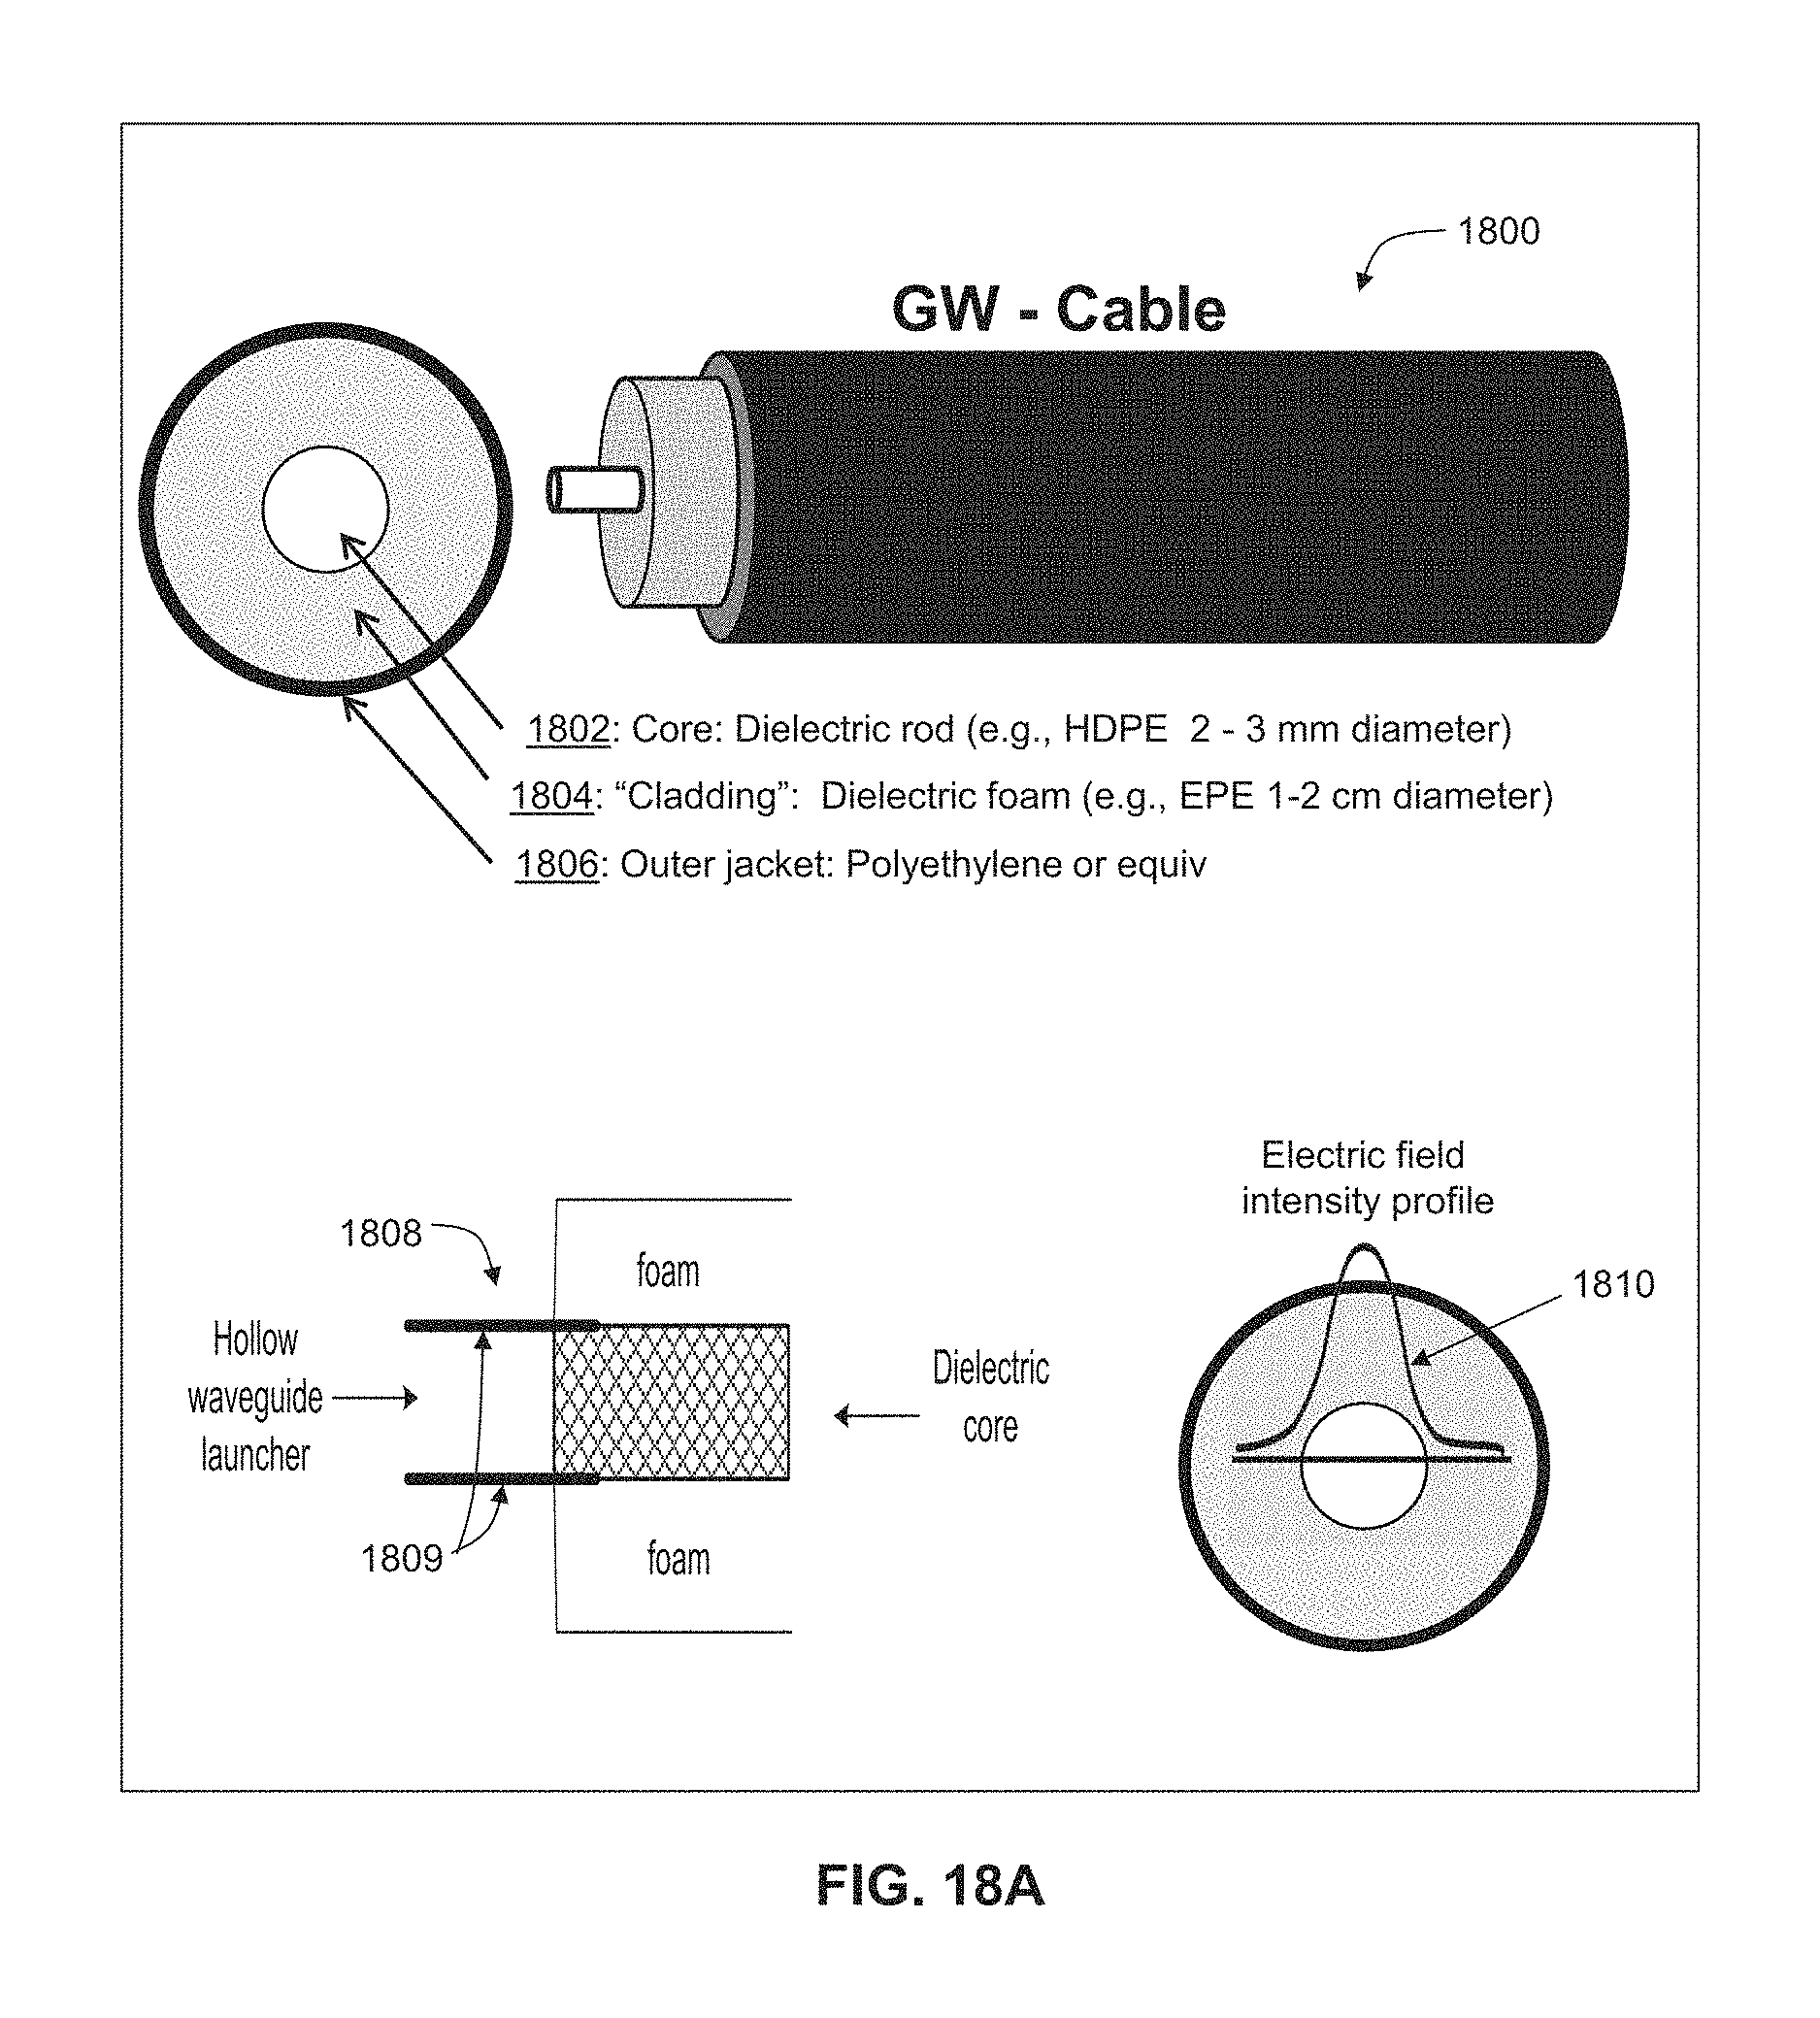 Us9847566b2 Method And Apparatus For Adjusting A Field Of Signal The Radio Builder Mw Receiverreflexive Radio2t To Mitigate Interference Google Patents